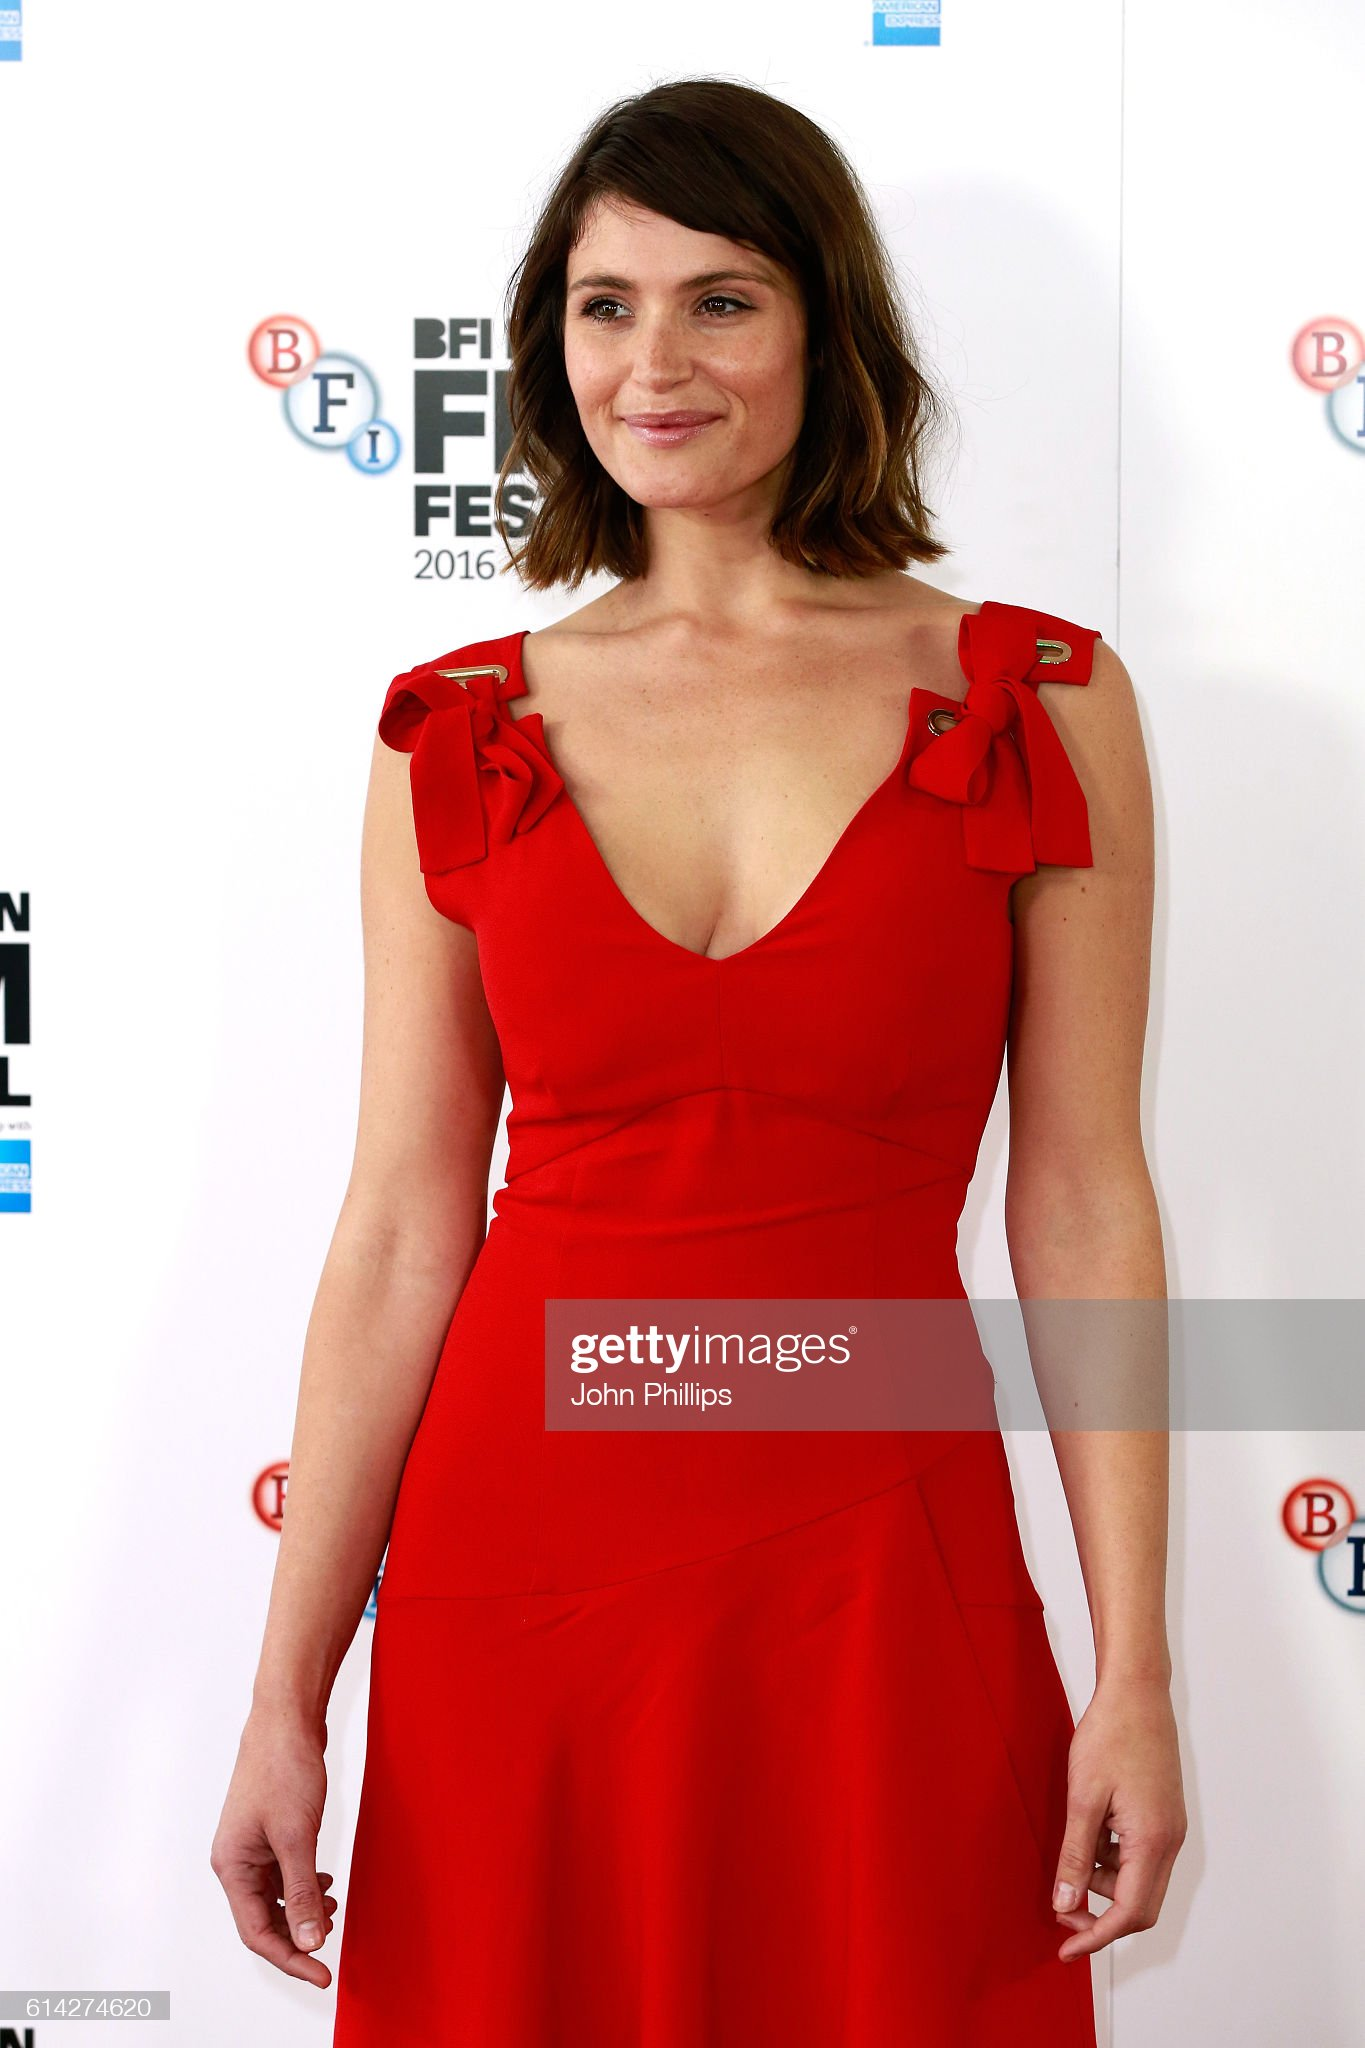 actress-gemma-arterton-attends-their-finest-photocall-during-the-60th-picture-id614274620